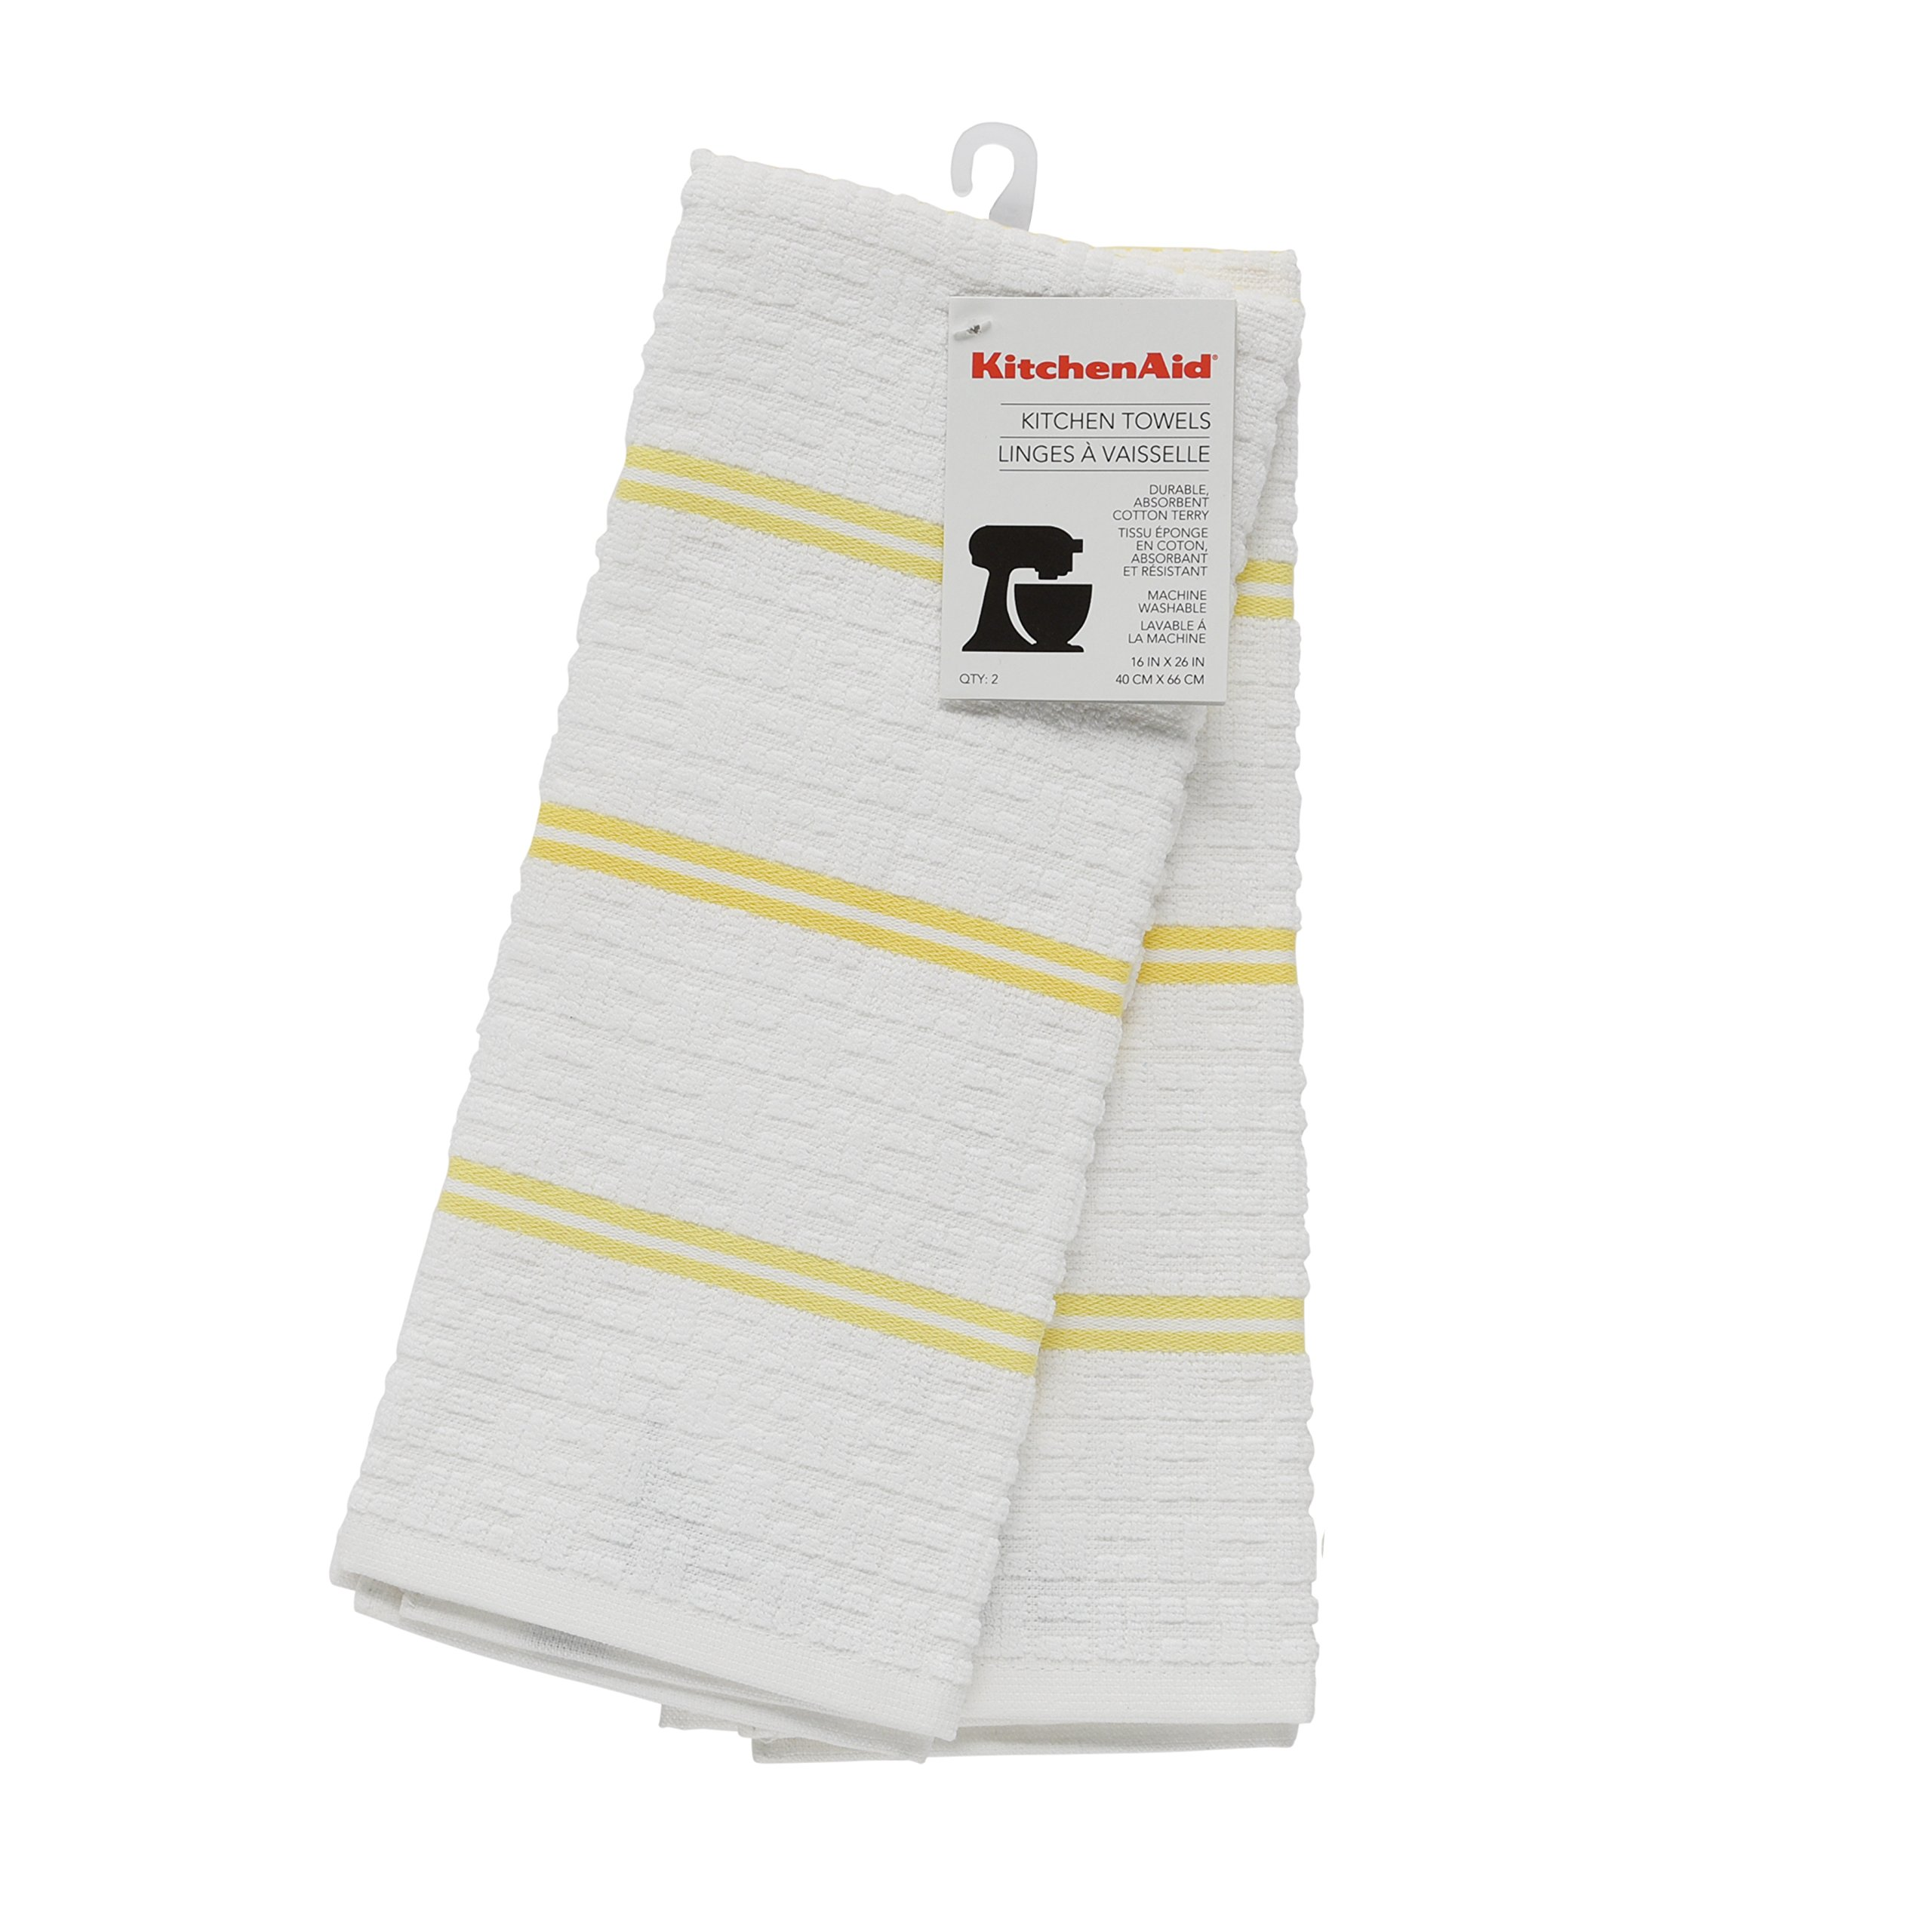 KitchenAid 156953KT2 700 Kitchen Towel, One Size